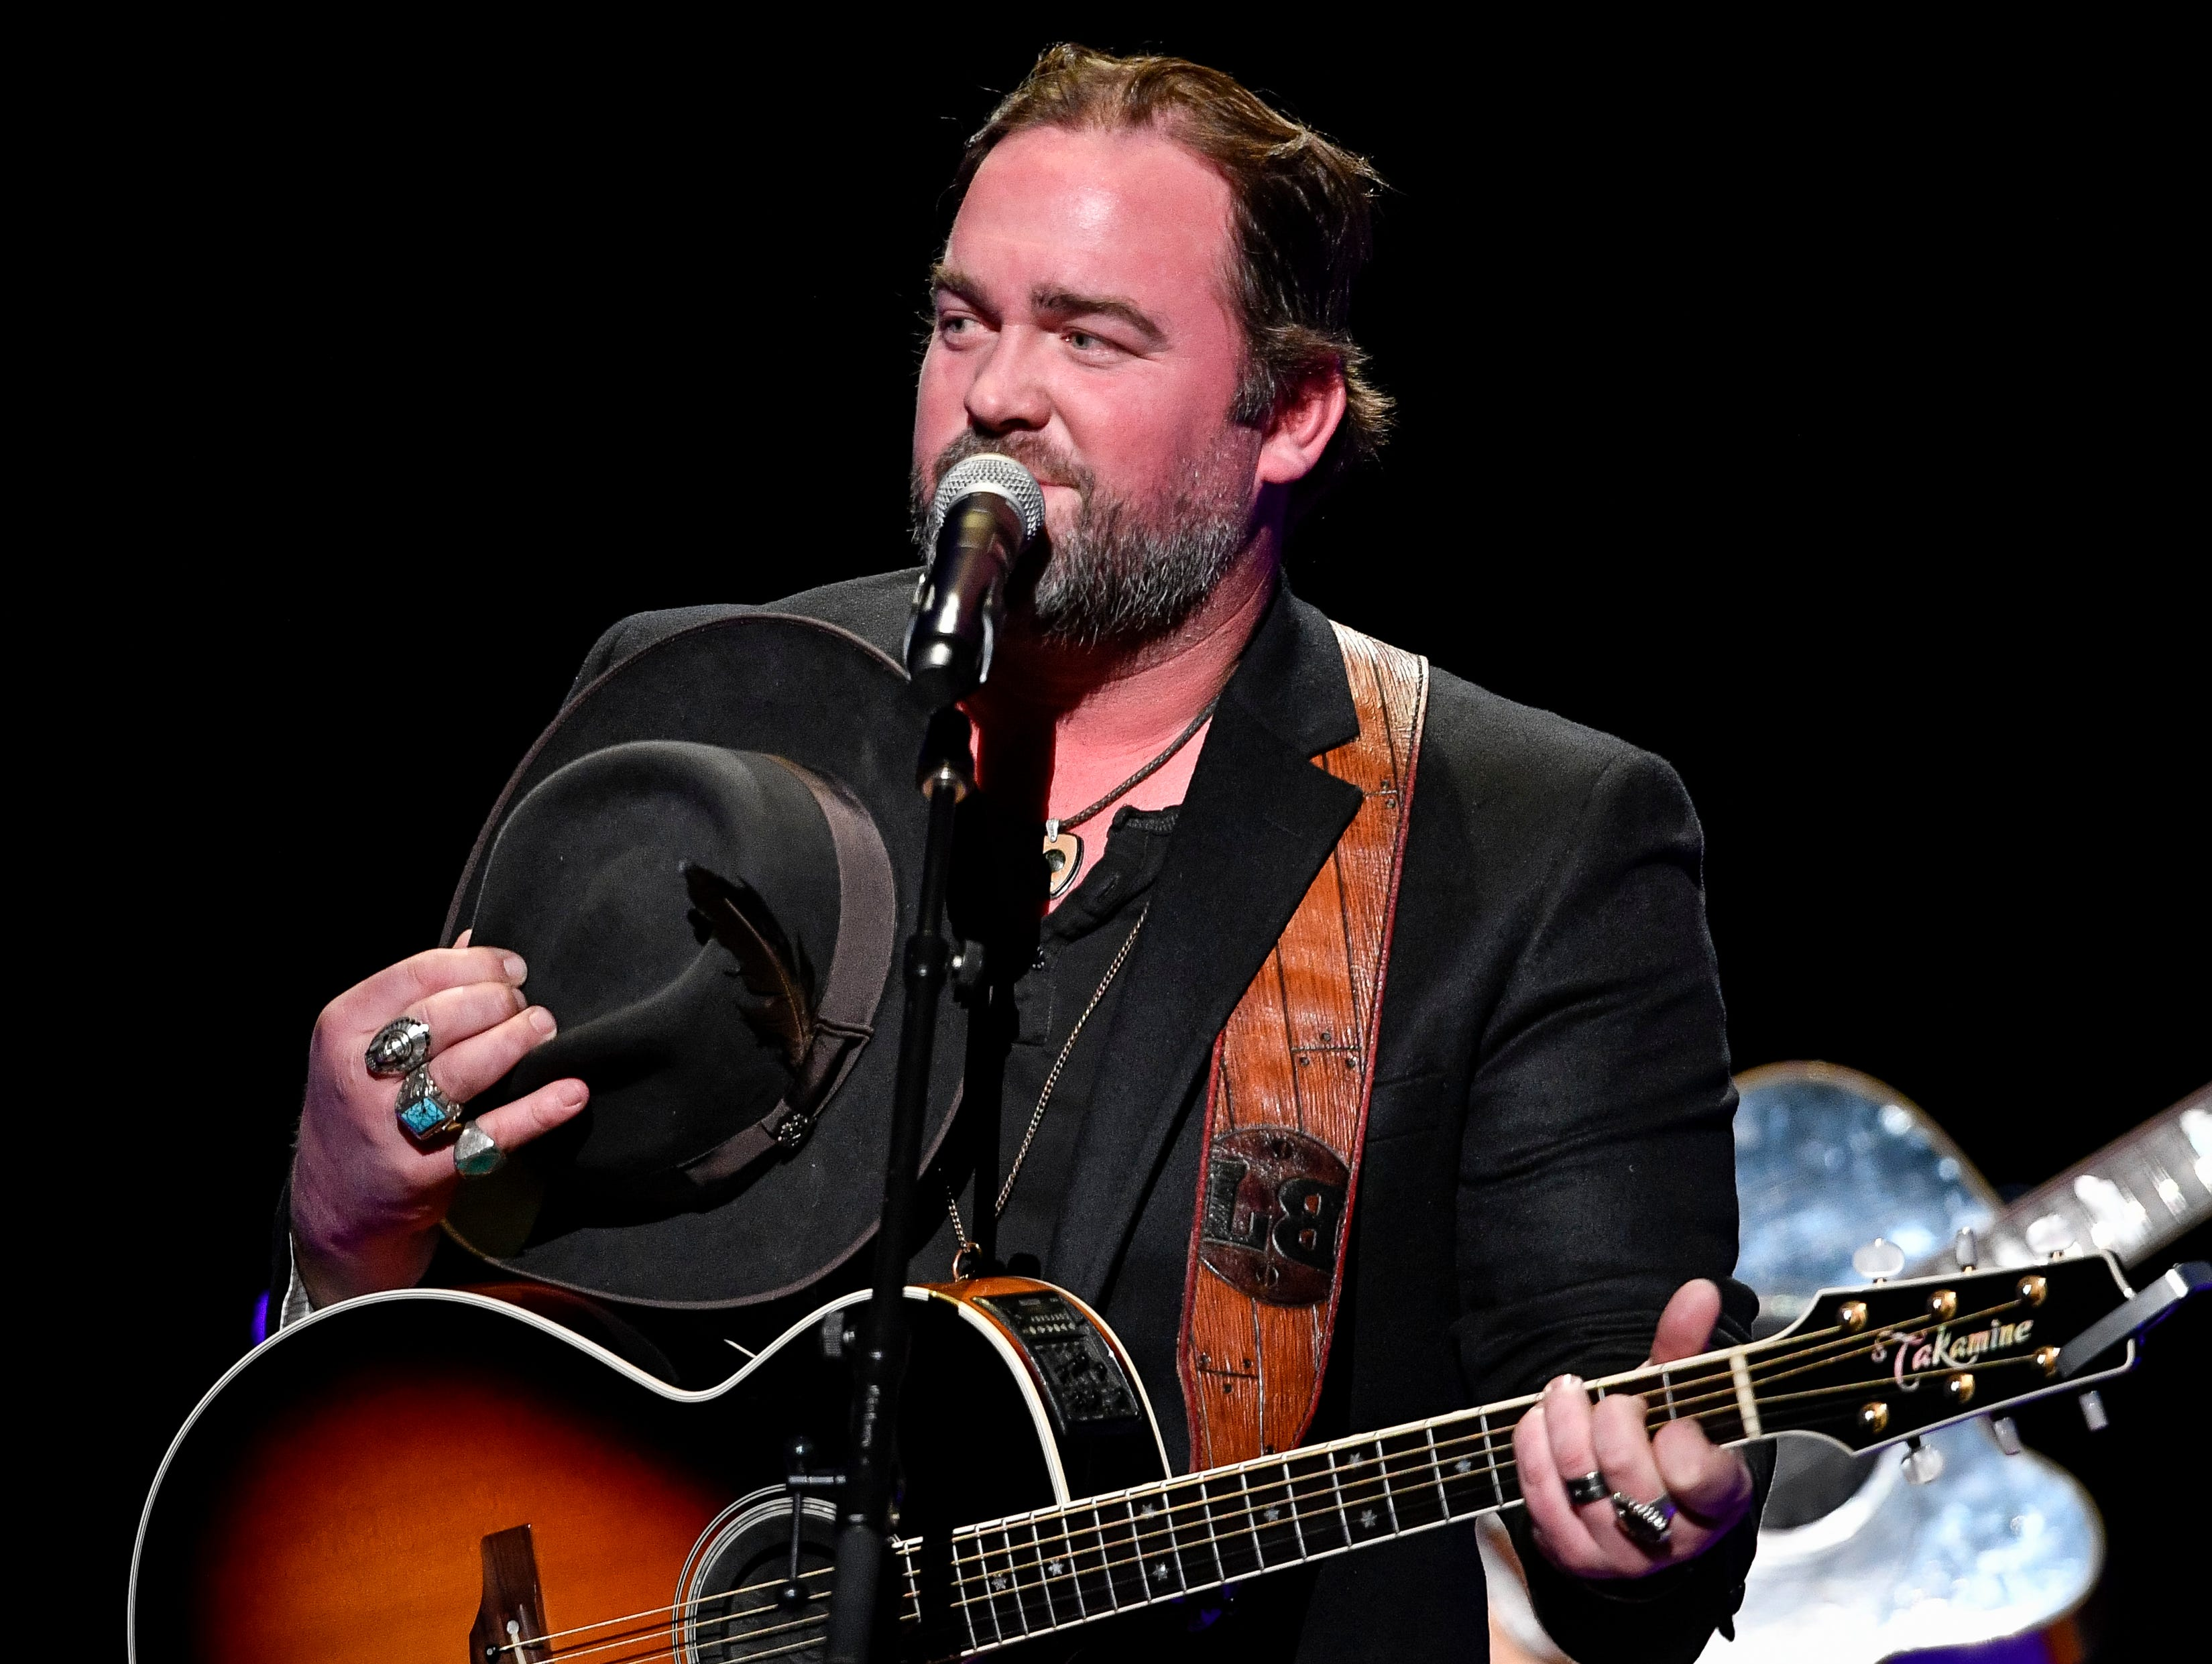 Lee Brice performs during the C'Ya On The Flipside Benefit Concert at the Grand Ole Opry House in Nashville, Tenn., Wednesday, Jan. 9, 2019.